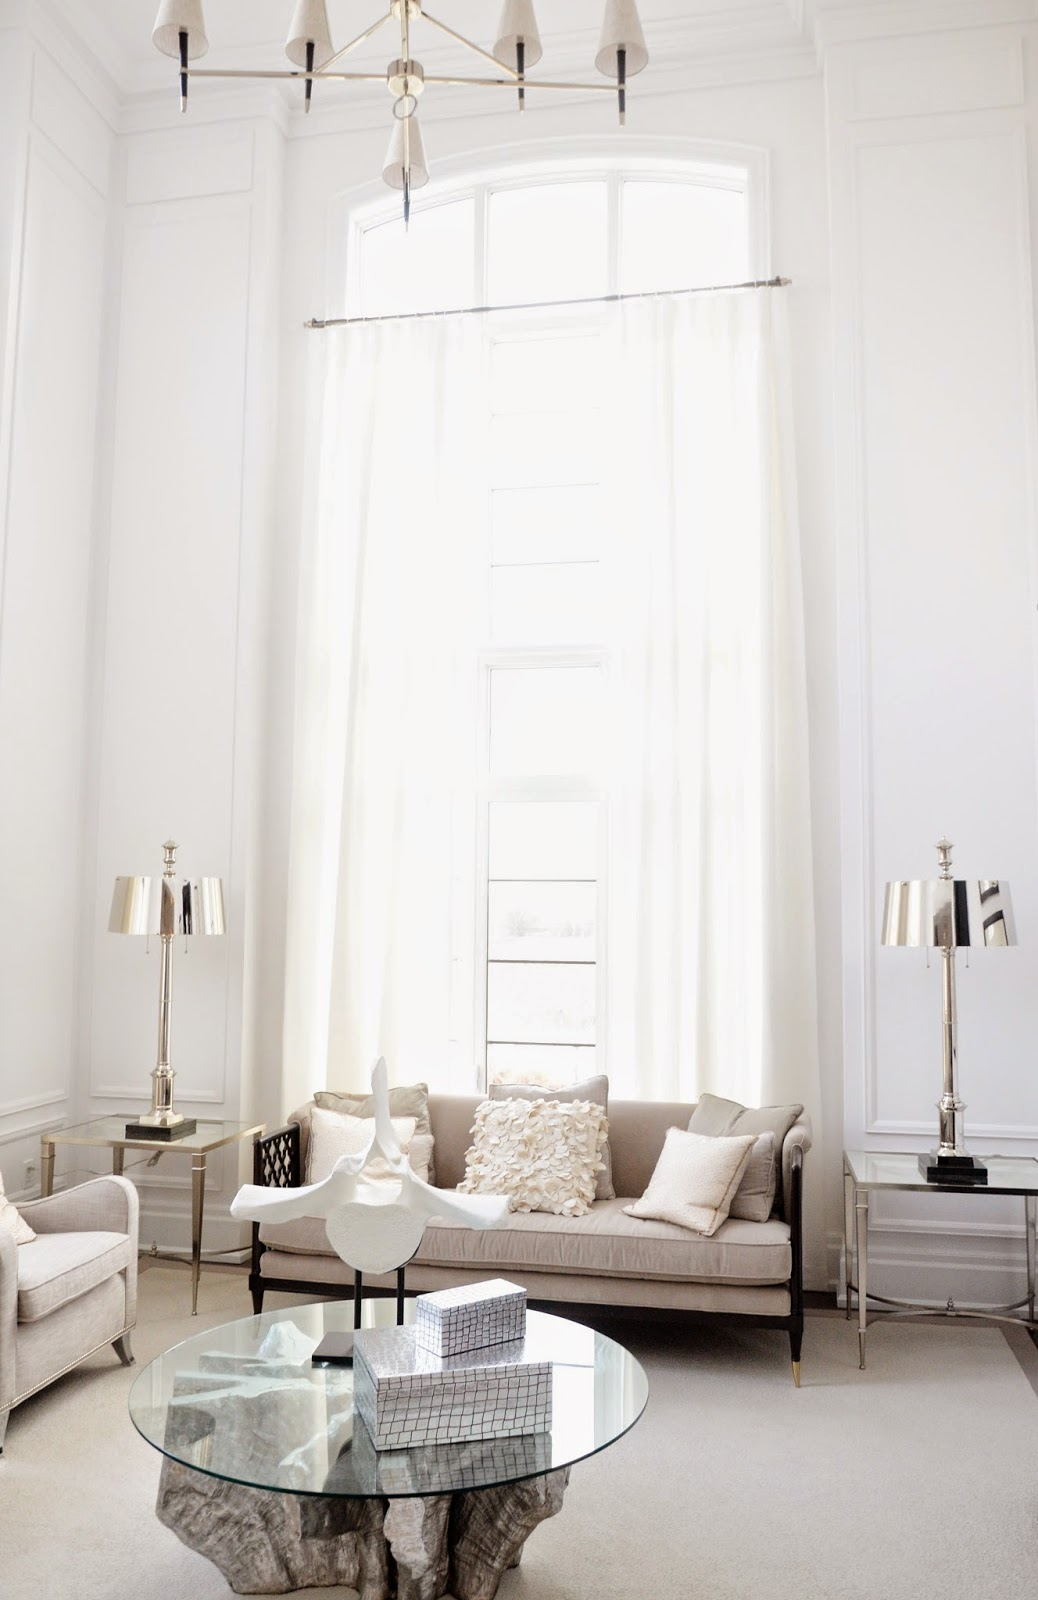 White Living Room Interior Deisgn Inspiration: Princess Margaret Lotto Show Home